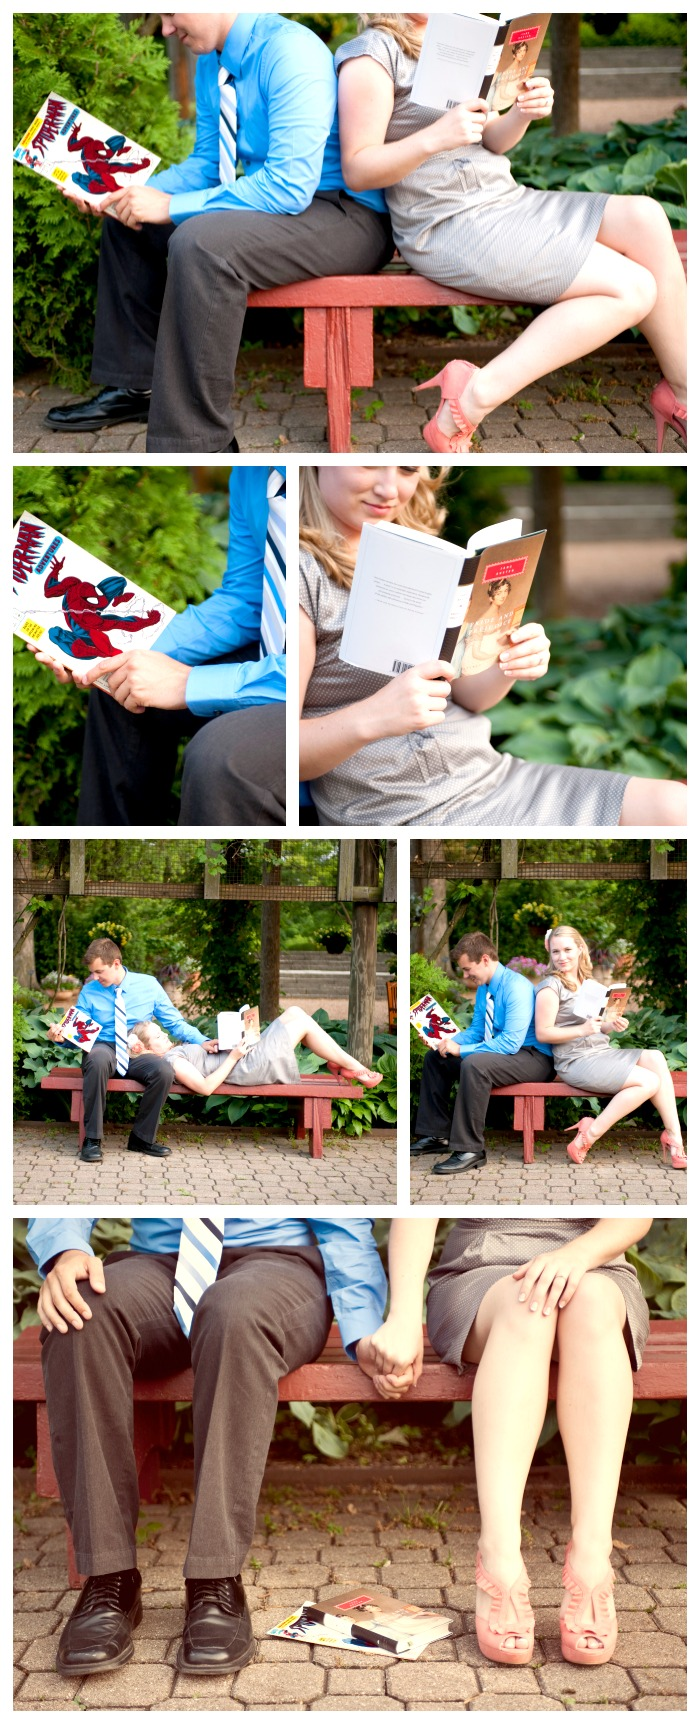 A Book Nerd Engagement Session by The Love Nerds #diywedding #engagementsession #lovenerdevents